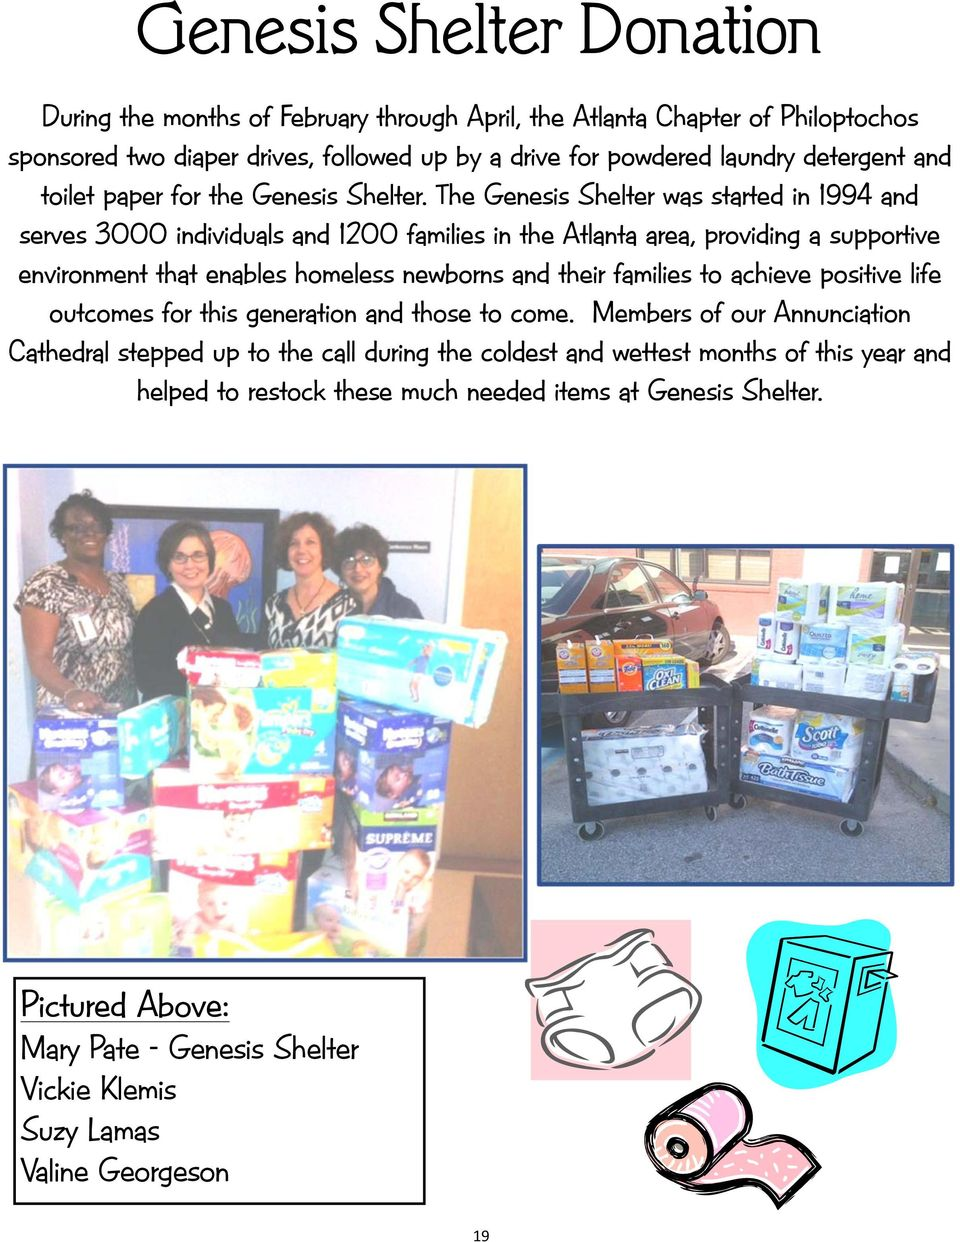 The Genesis Shelter was started in 1994 and serves 3000 individuals and 1200 families in the Atlanta area, providing a supportive environment that enables homeless newborns and their